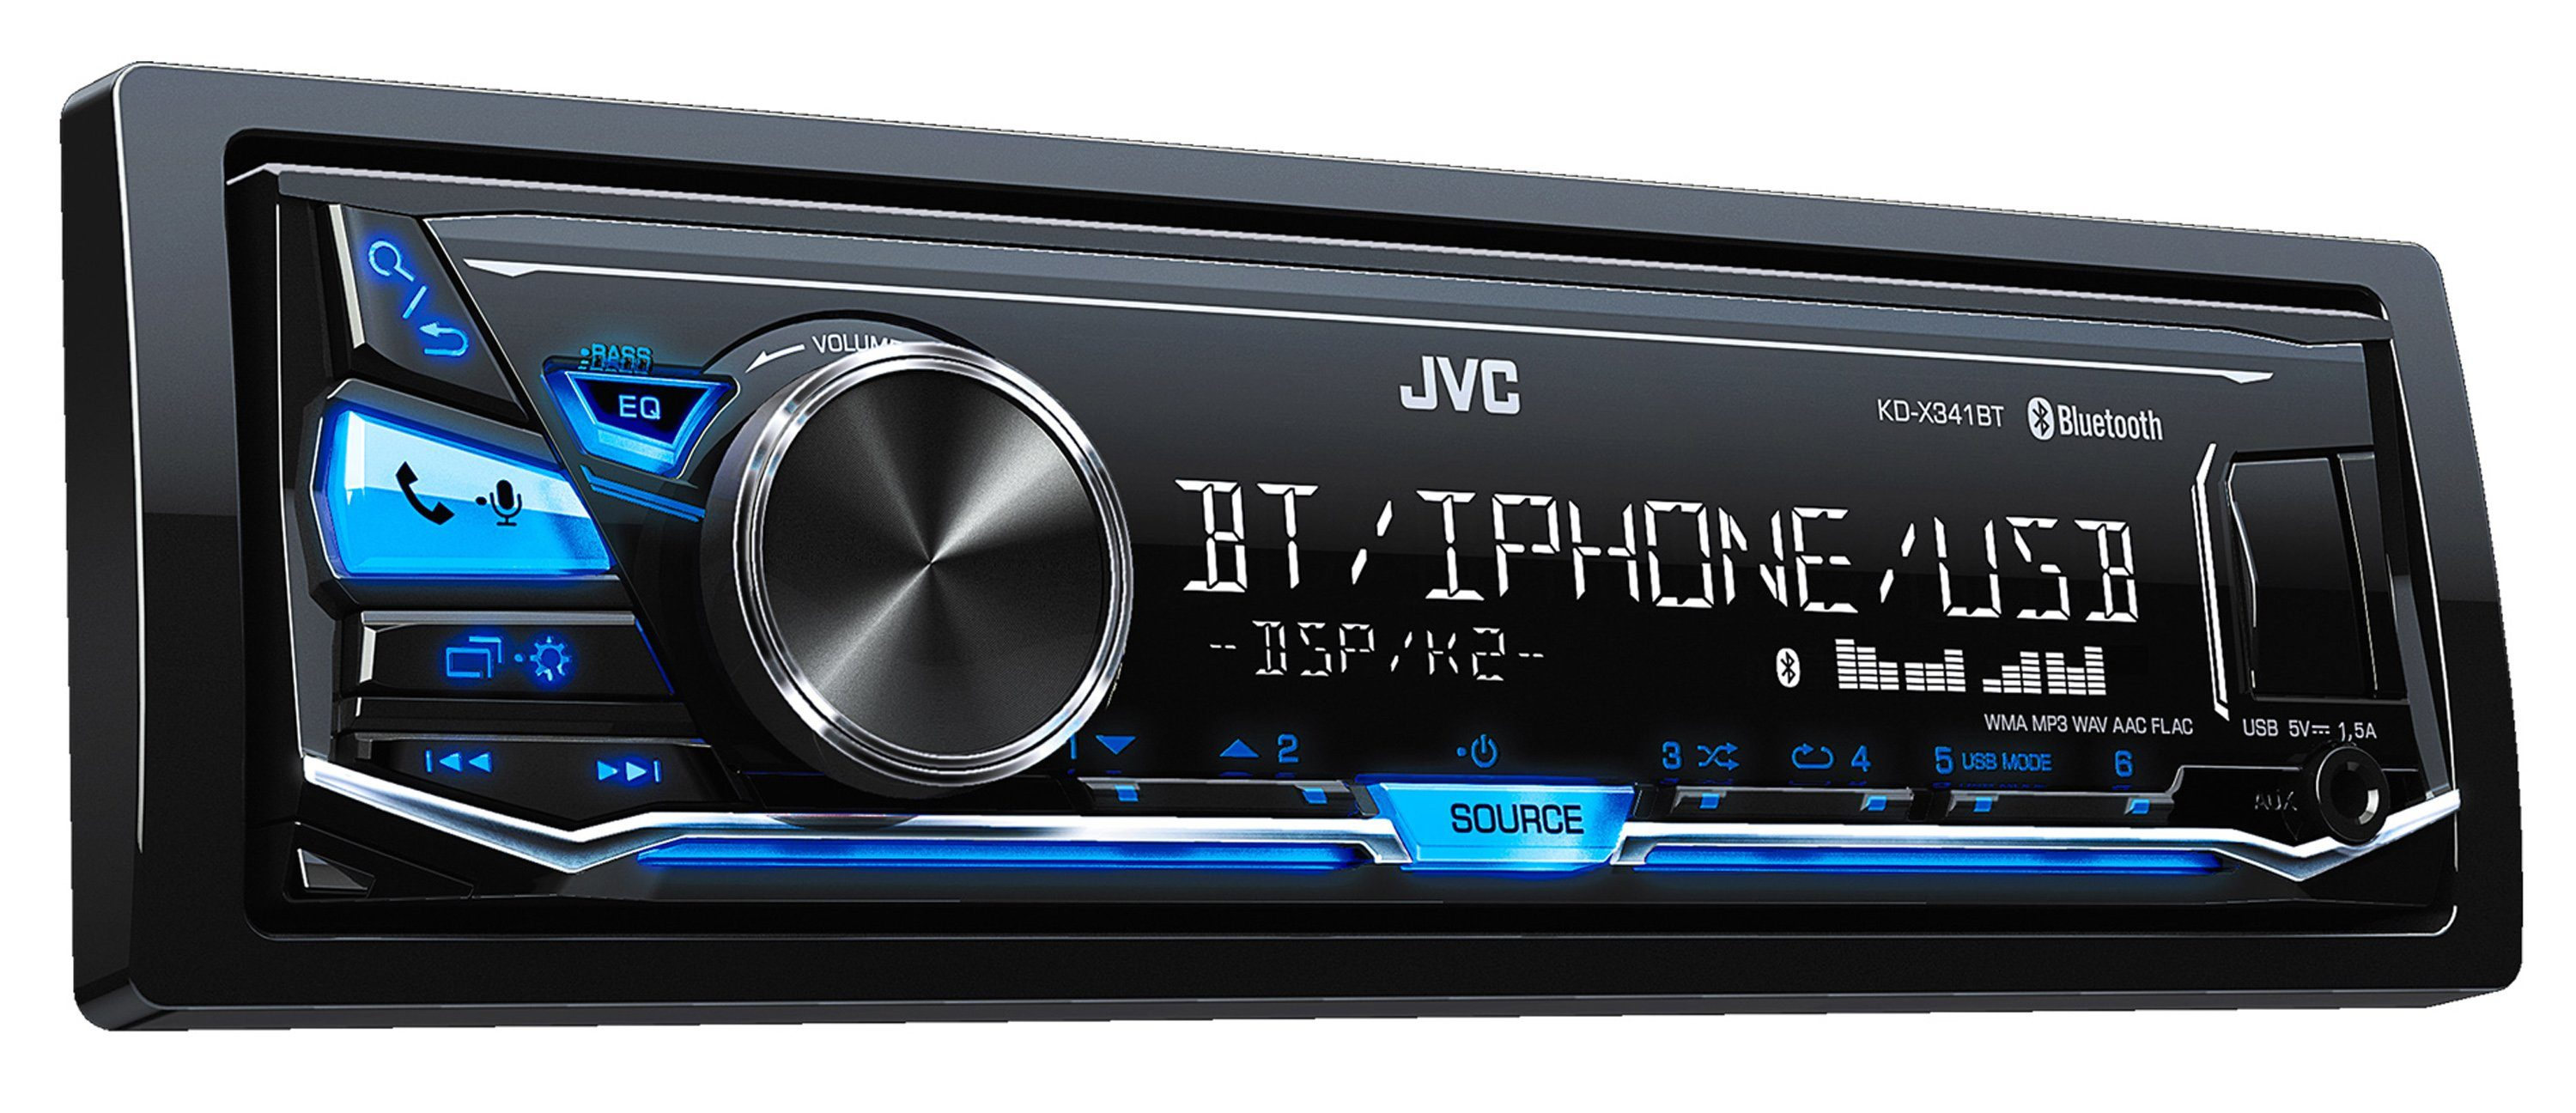 JVC 1-DIN Digital-Media-Receiver mit Bluetooth & USB »KD-X341BT«